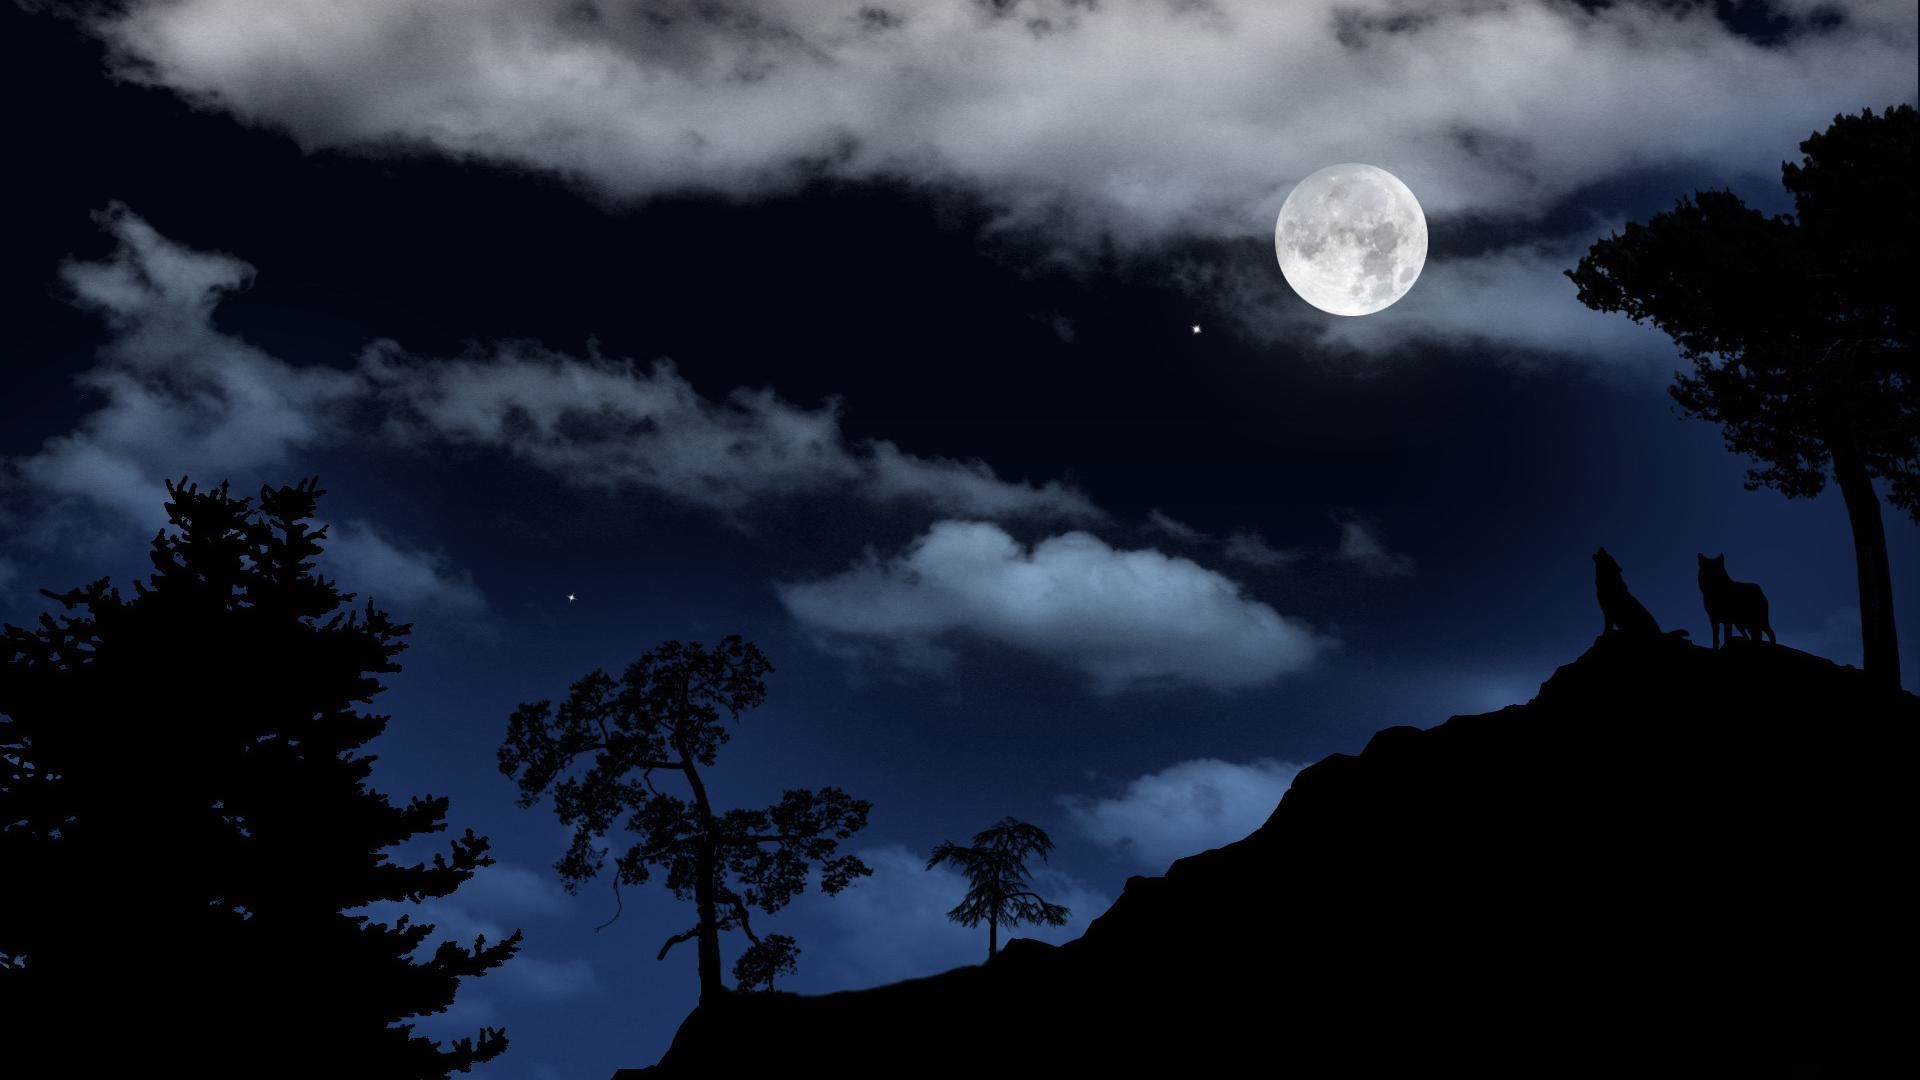 Images Of Hd Love Wallpapers Wolf Howling At The Moon Wallpaper 66 Images